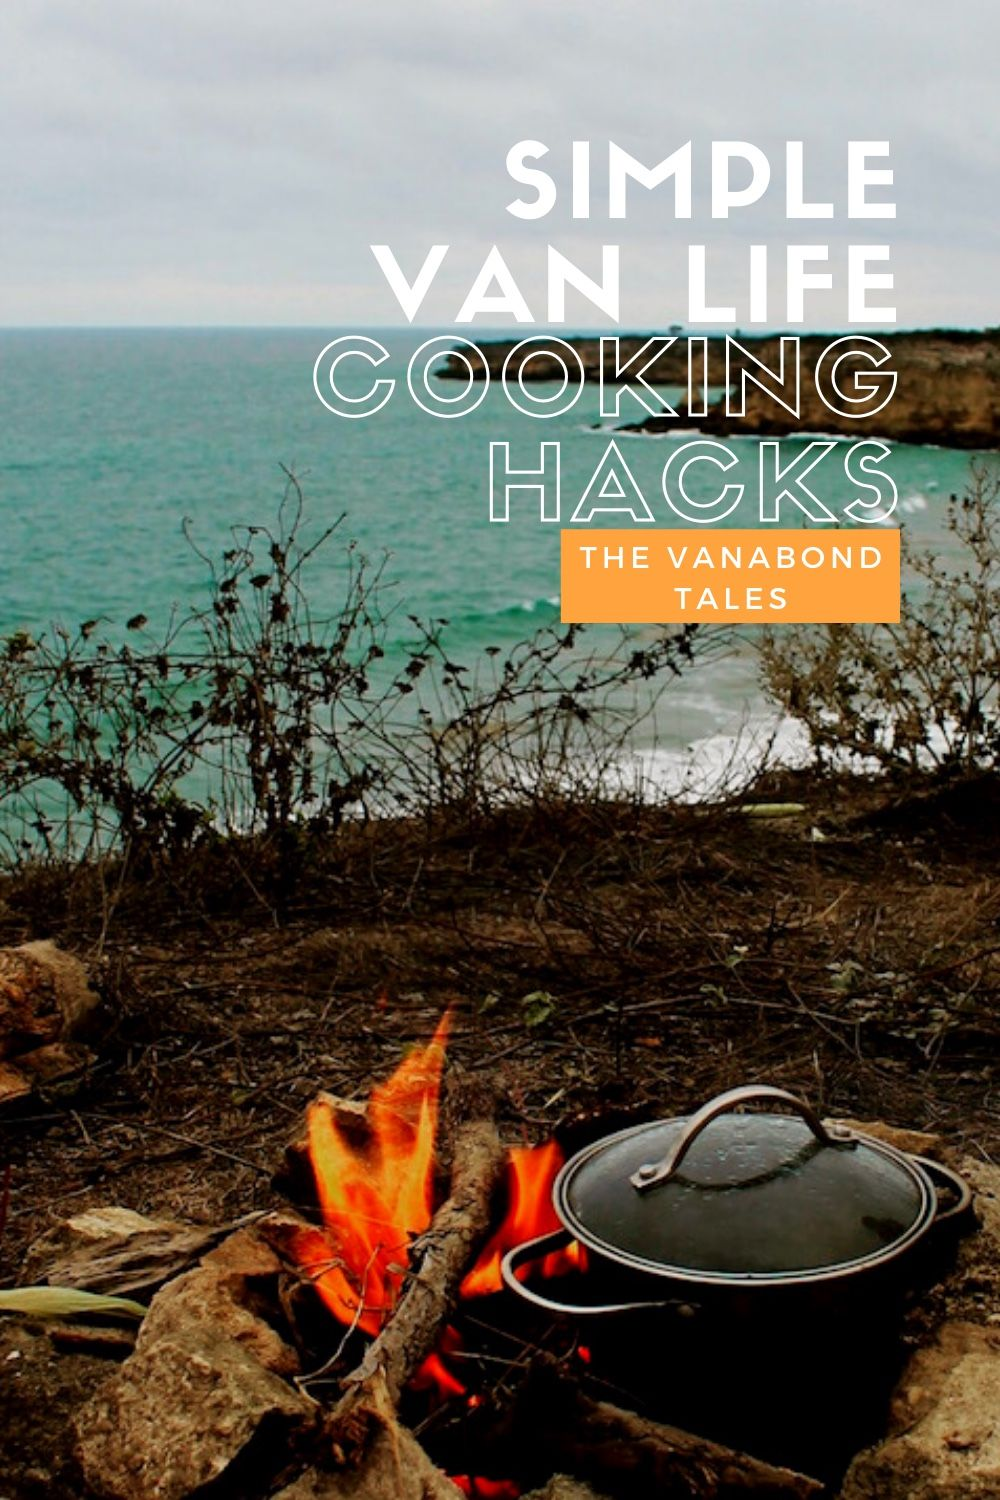 Elevate your van life kitchen with these handy tips and tricks. 10 simple van life cooking hacks every overlander, camper and van life cook should know.   van life cooking | vanlife cooking | van life food | cooking in a van | van life meals | vanlife kitchen | van life food no fridge | van life kitchen | van life recipes | cooking inside a van | van life cookbook | van life tips and tricks | vanlife kitchen essentials  #vanlife #vanlifekitchen #vanlifecooking